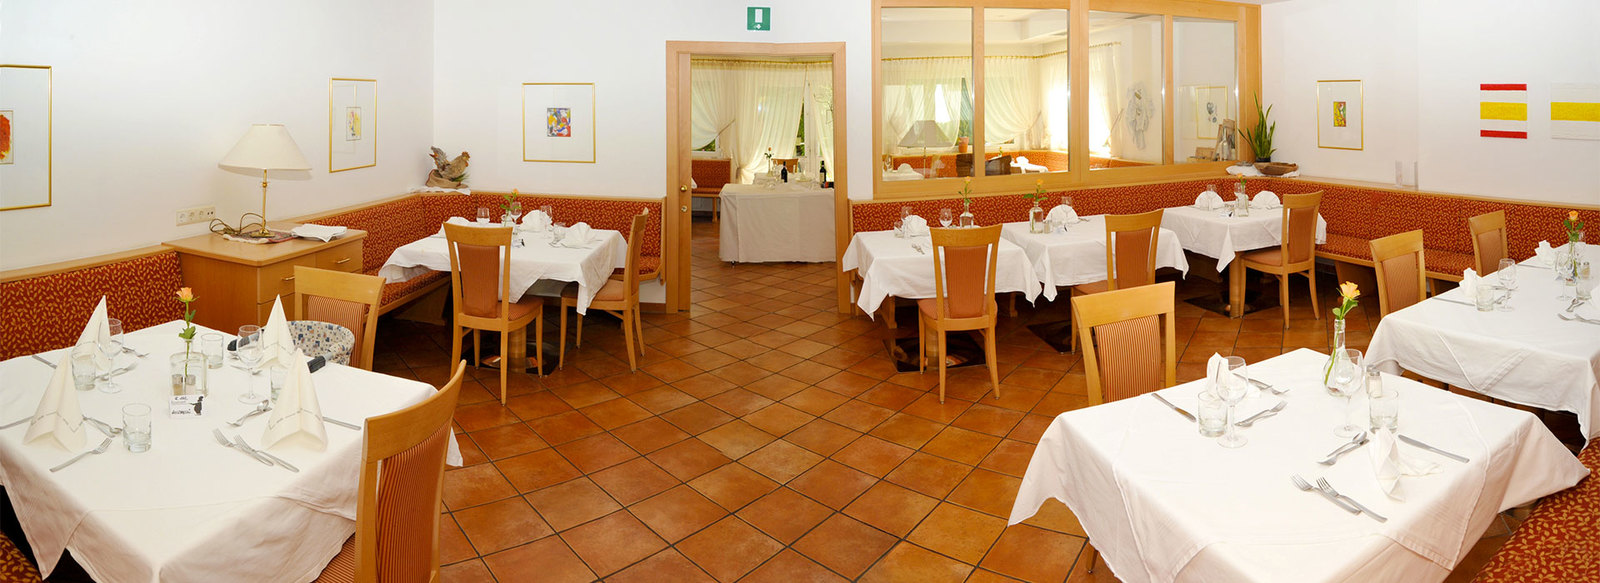 Cucina tipica in Val Pusteria